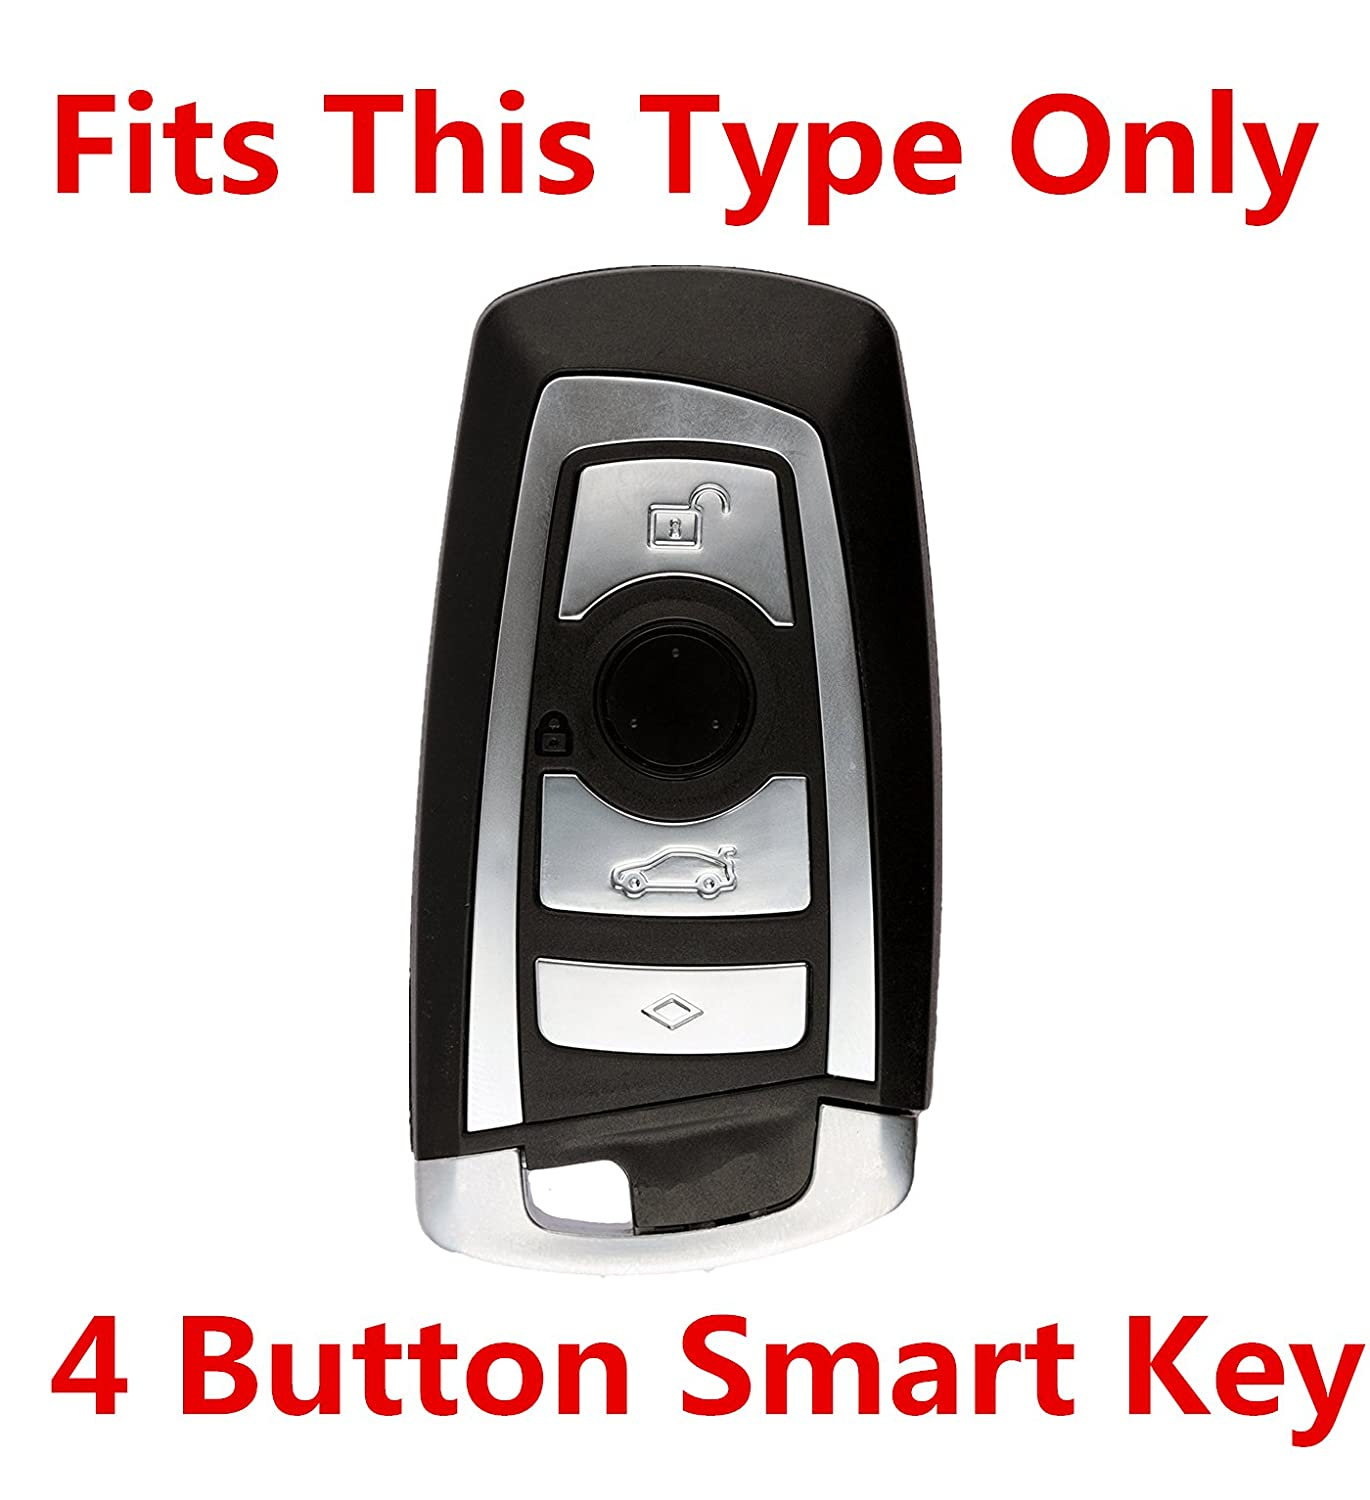 Rpkey Silicone Keyless Entry Remote Control Key Fob Cover Case protector For BMW 1 3 5 6 7 Series YGOHUF5662 ASD